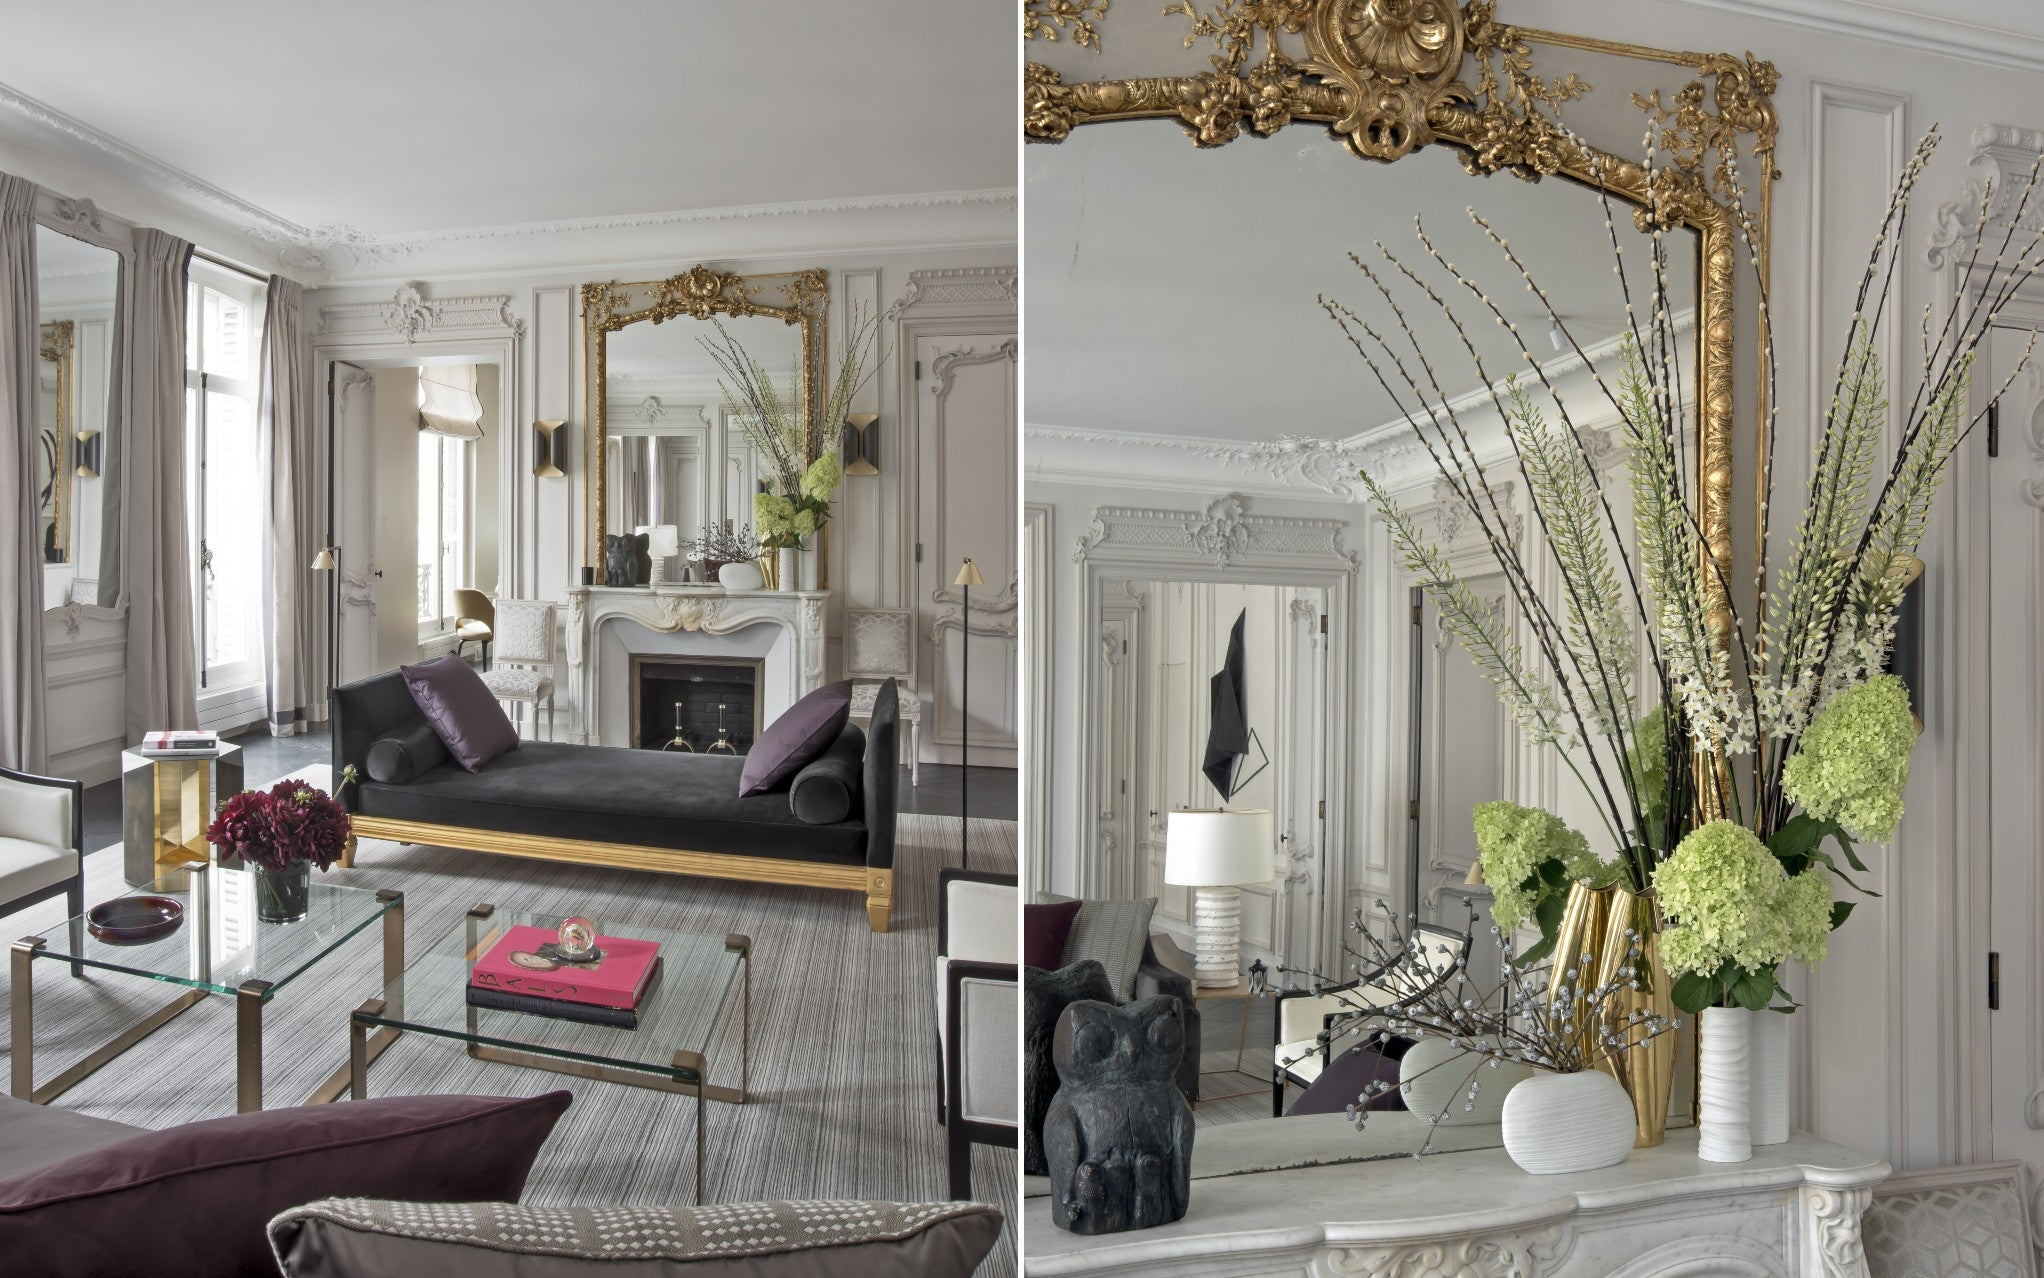 Discover Champeau & Wilde's Nouvelle Athenes Project in Paris - Living Room - LuxDeco Style Guide